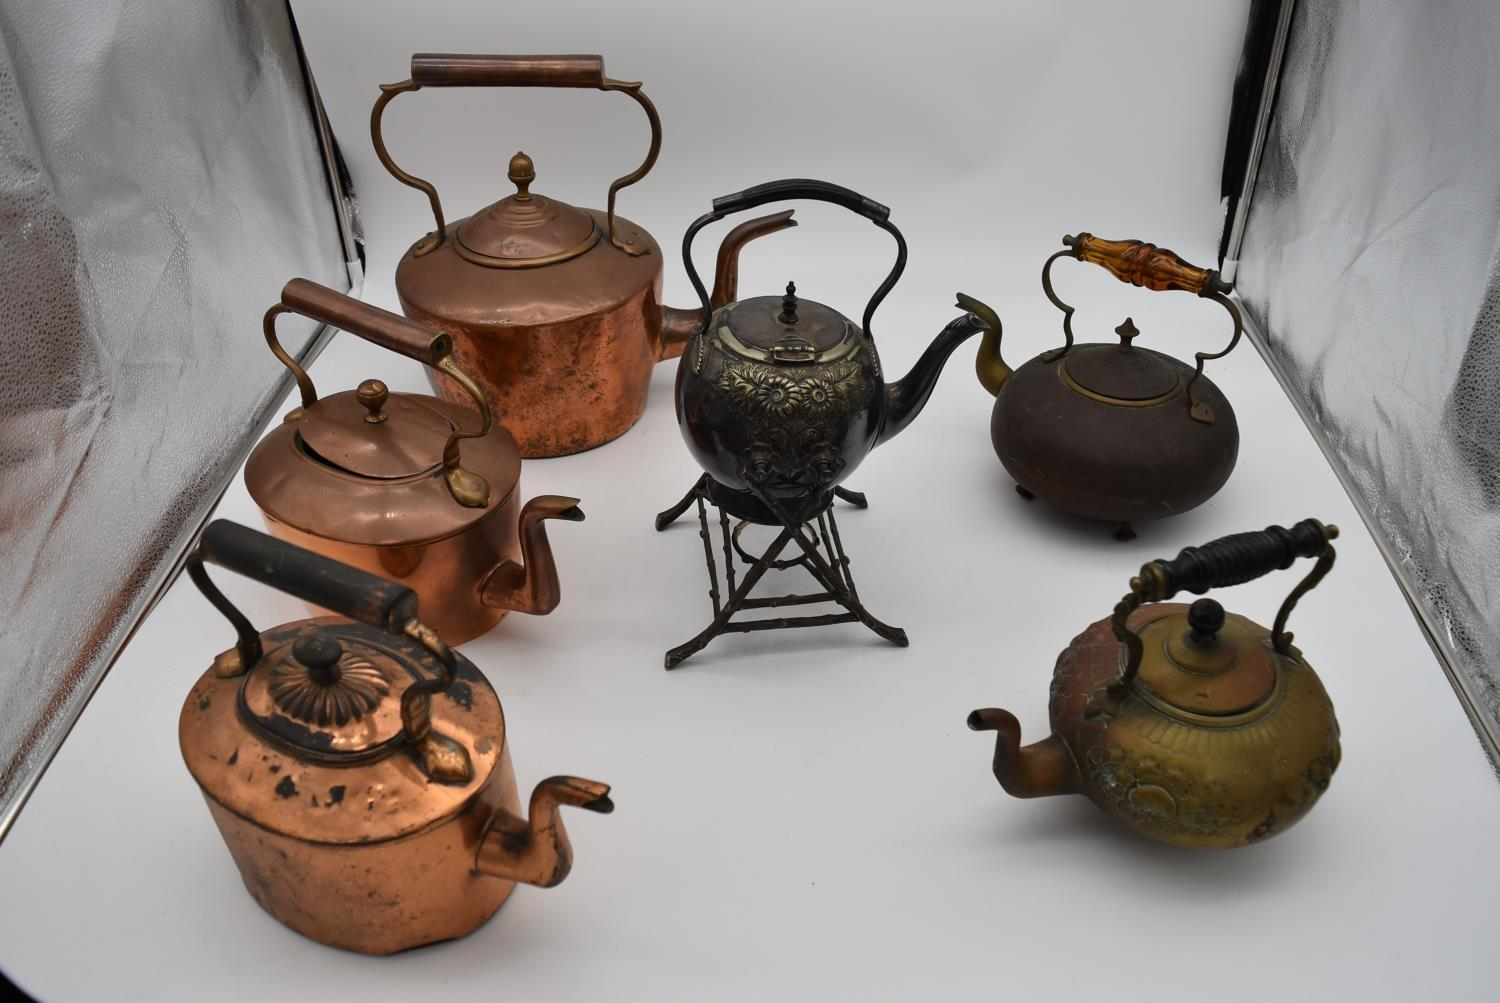 A 19th century silver plated spirit kettle on stand and a collection of five copper and brass